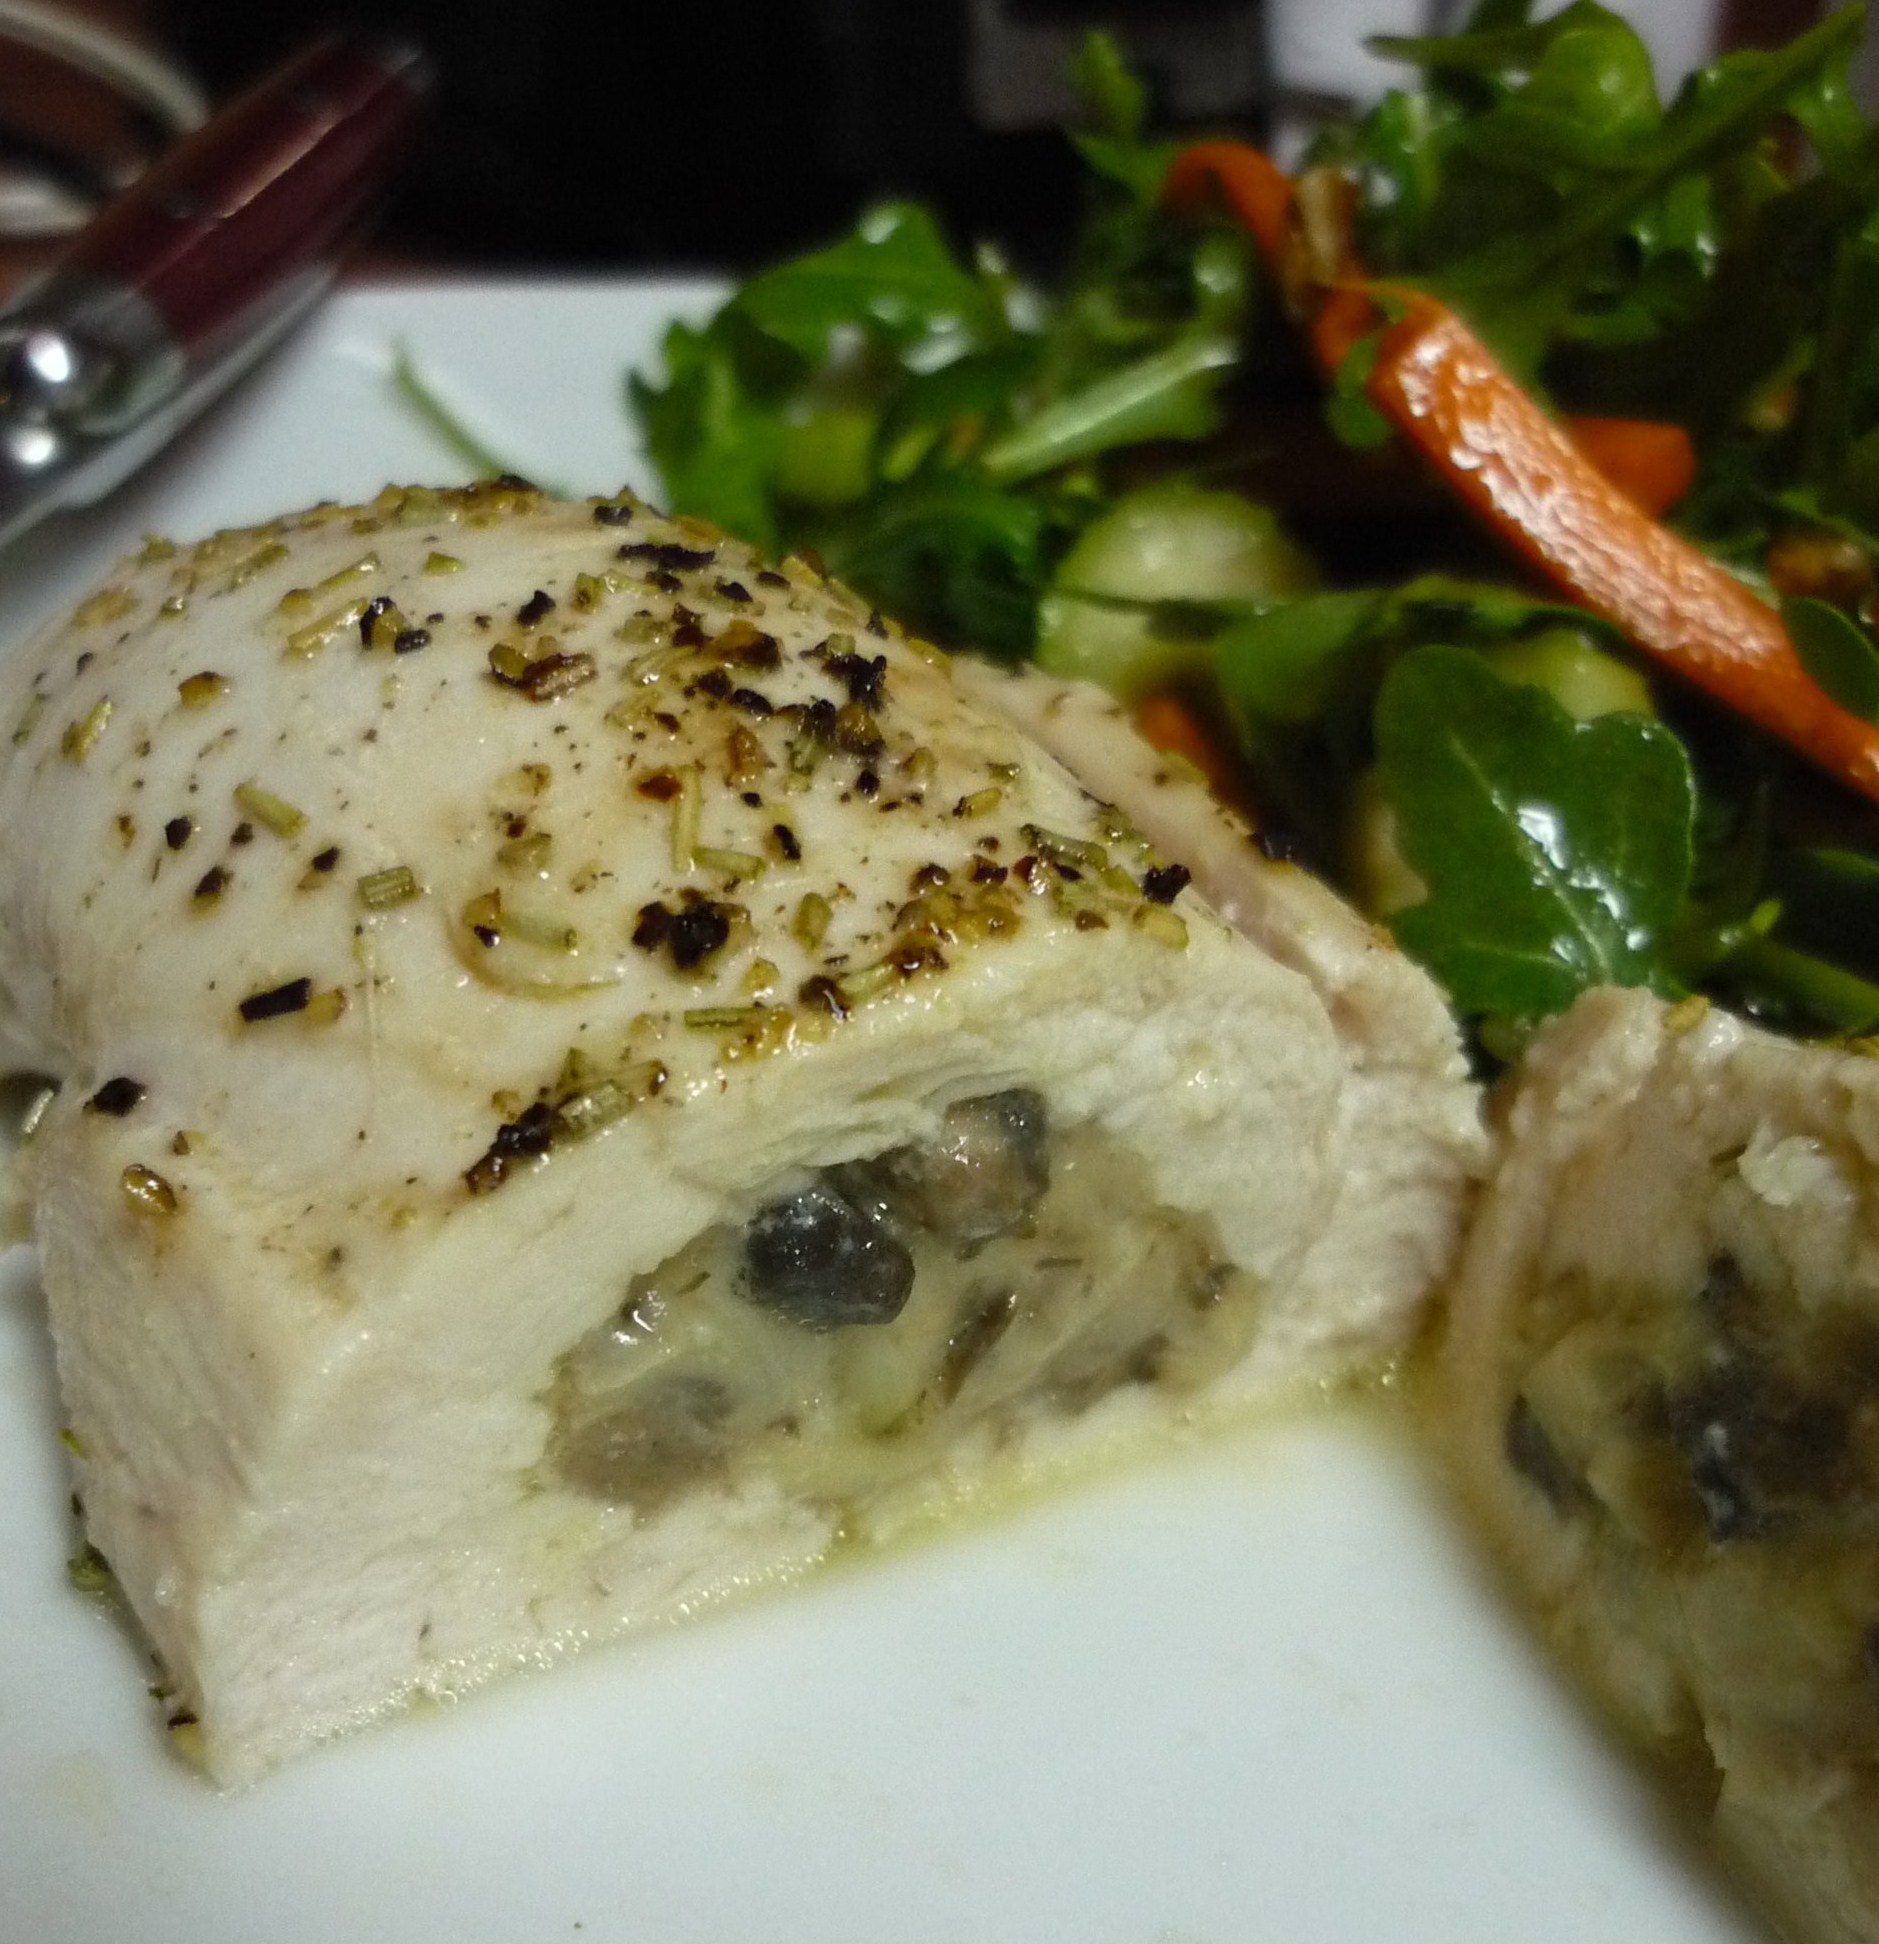 Parmesan and Mushroom Stuffed Chicken Breast | Things My Belly Likes